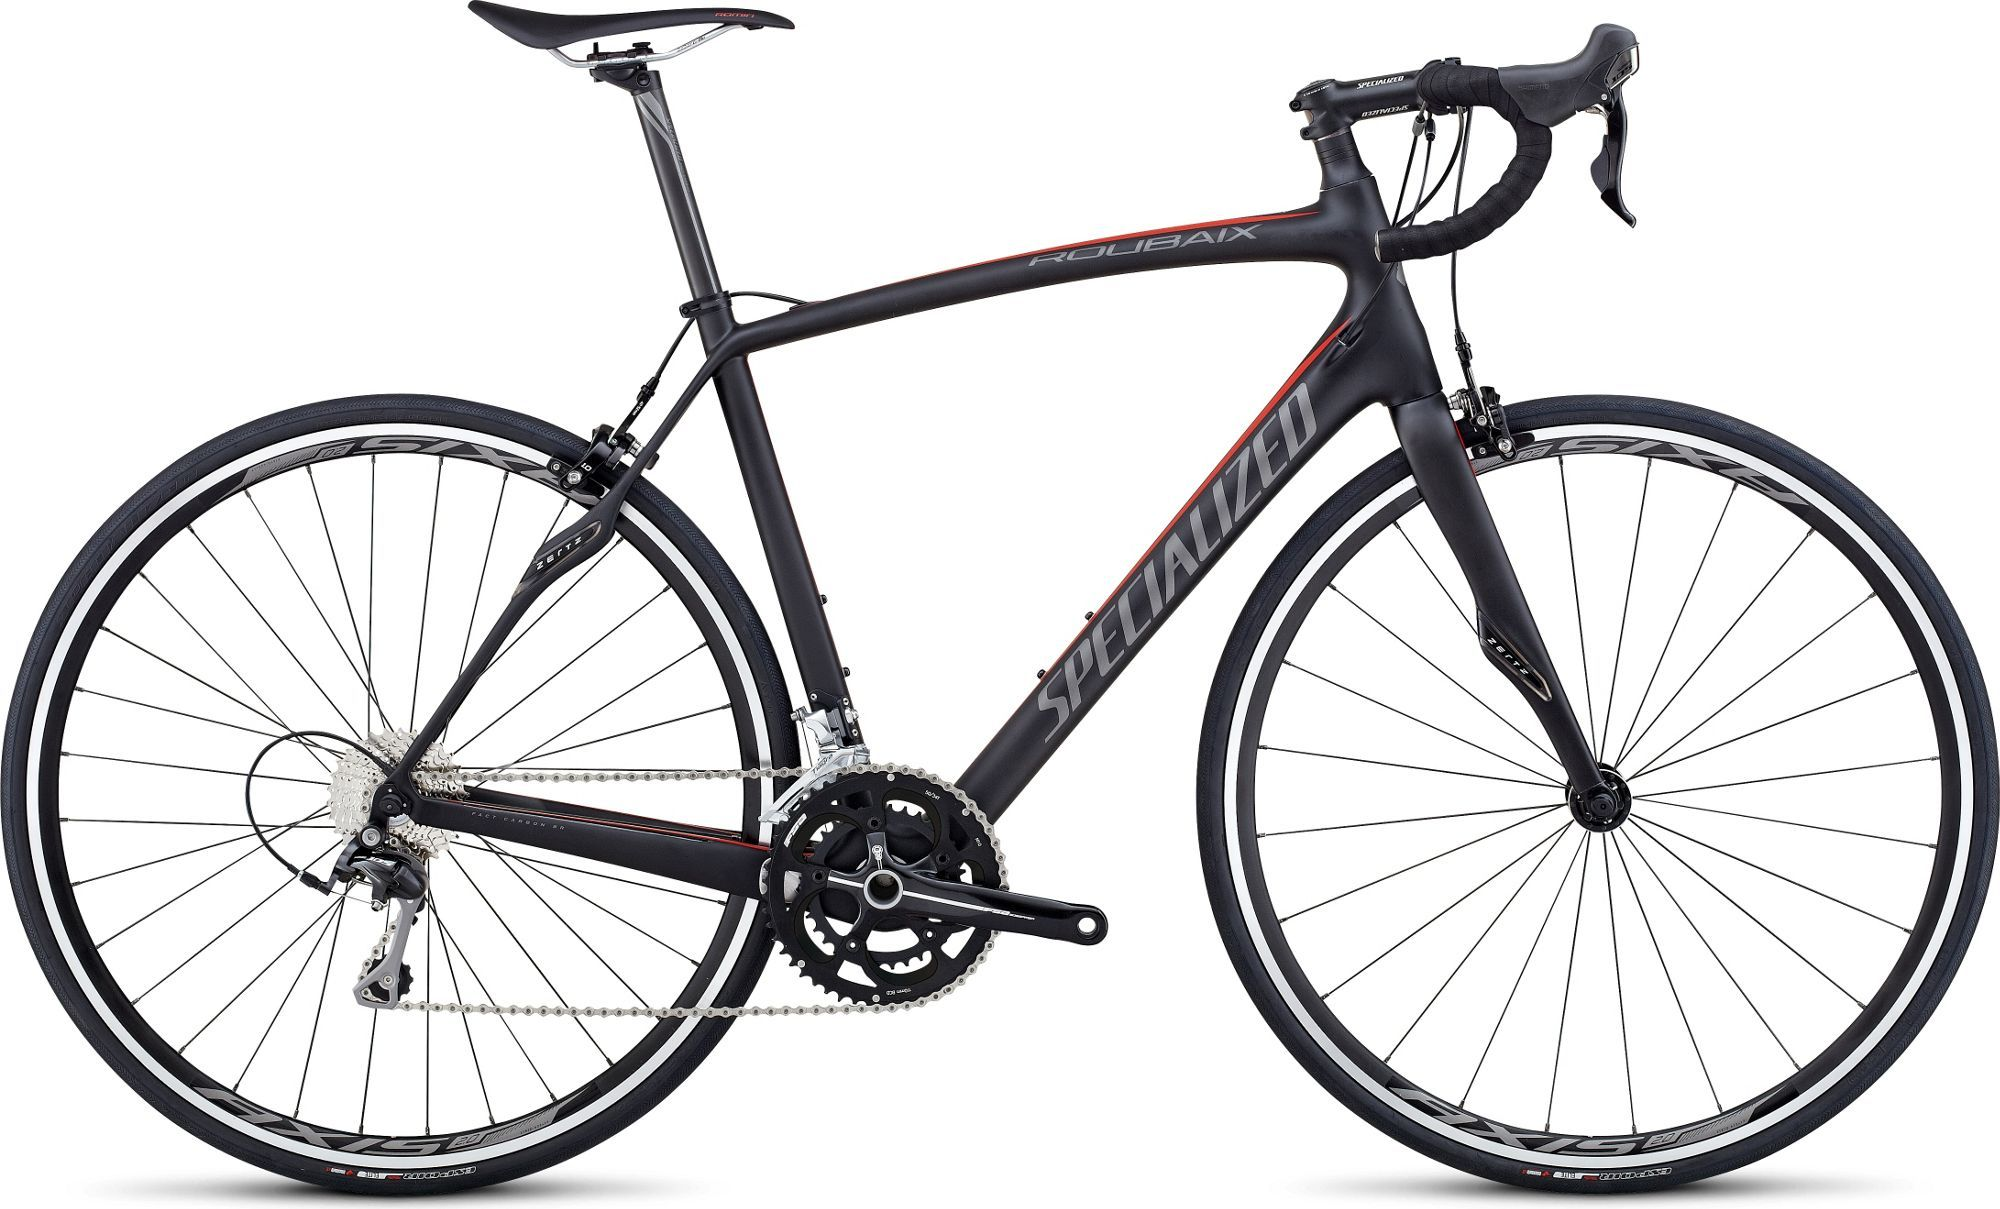 Specialized Roubaix Sl4 Sport Compact 2014 Review The